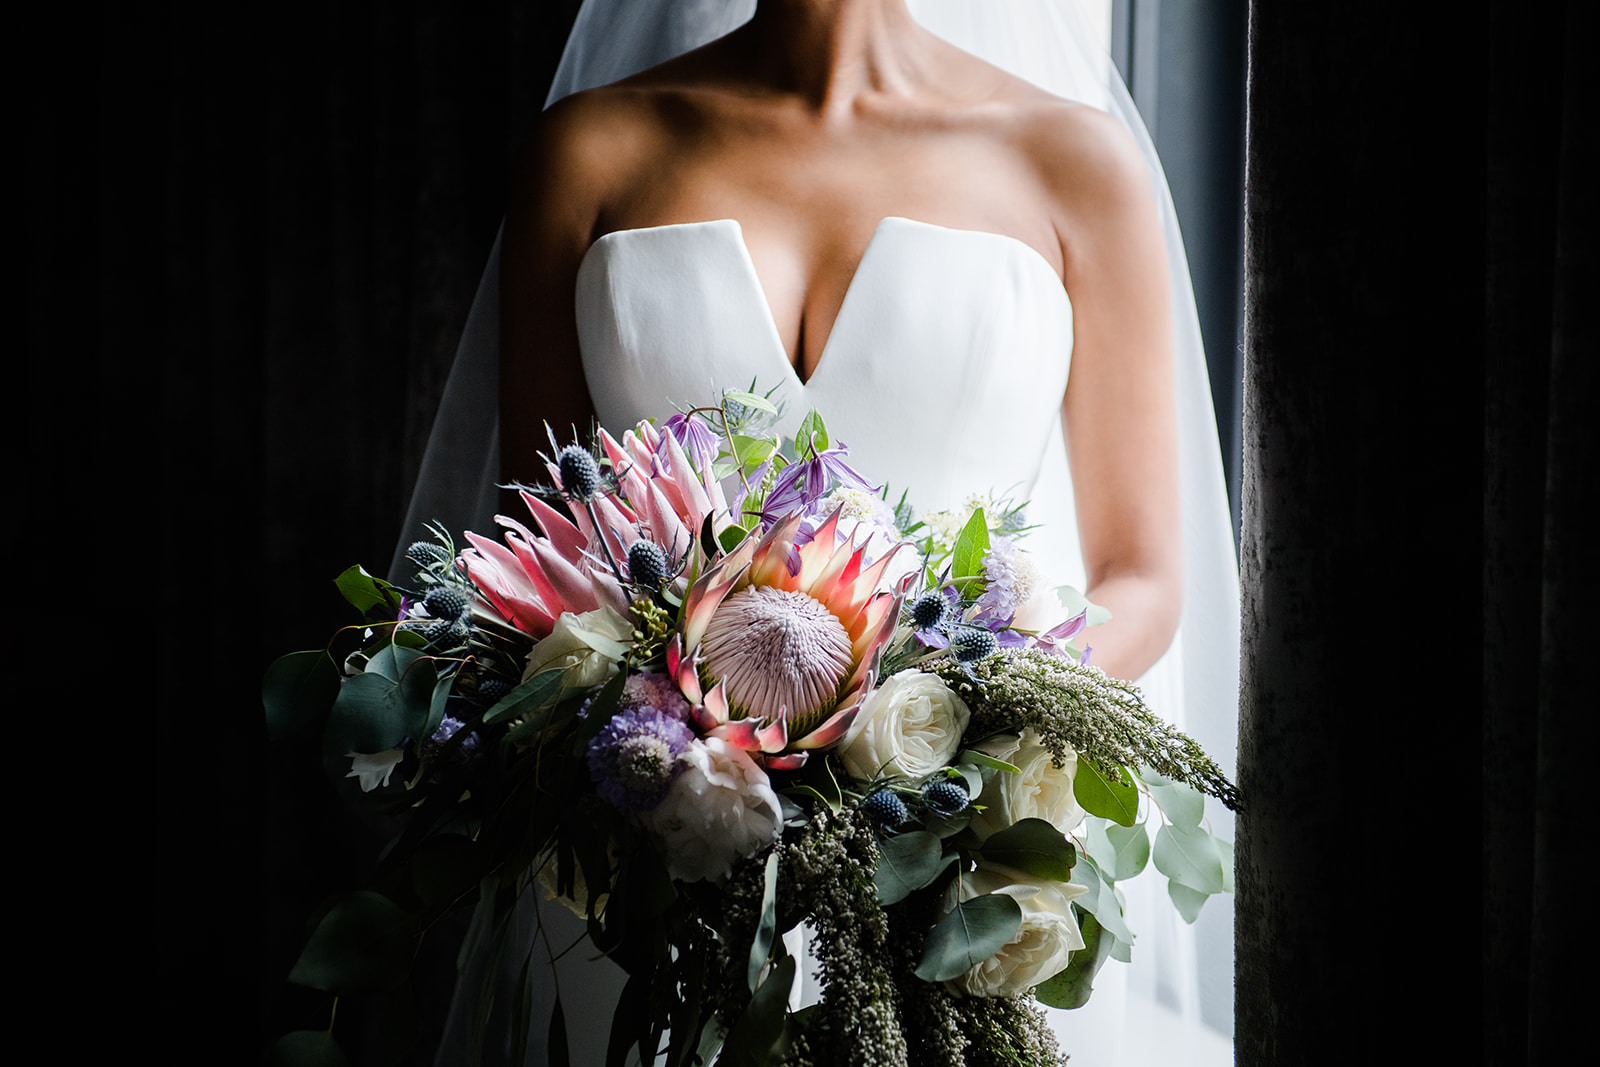 Bride holding her bridal floral bouquet created by Kehoe Designs for her wedding in Chicago at the Art Institute